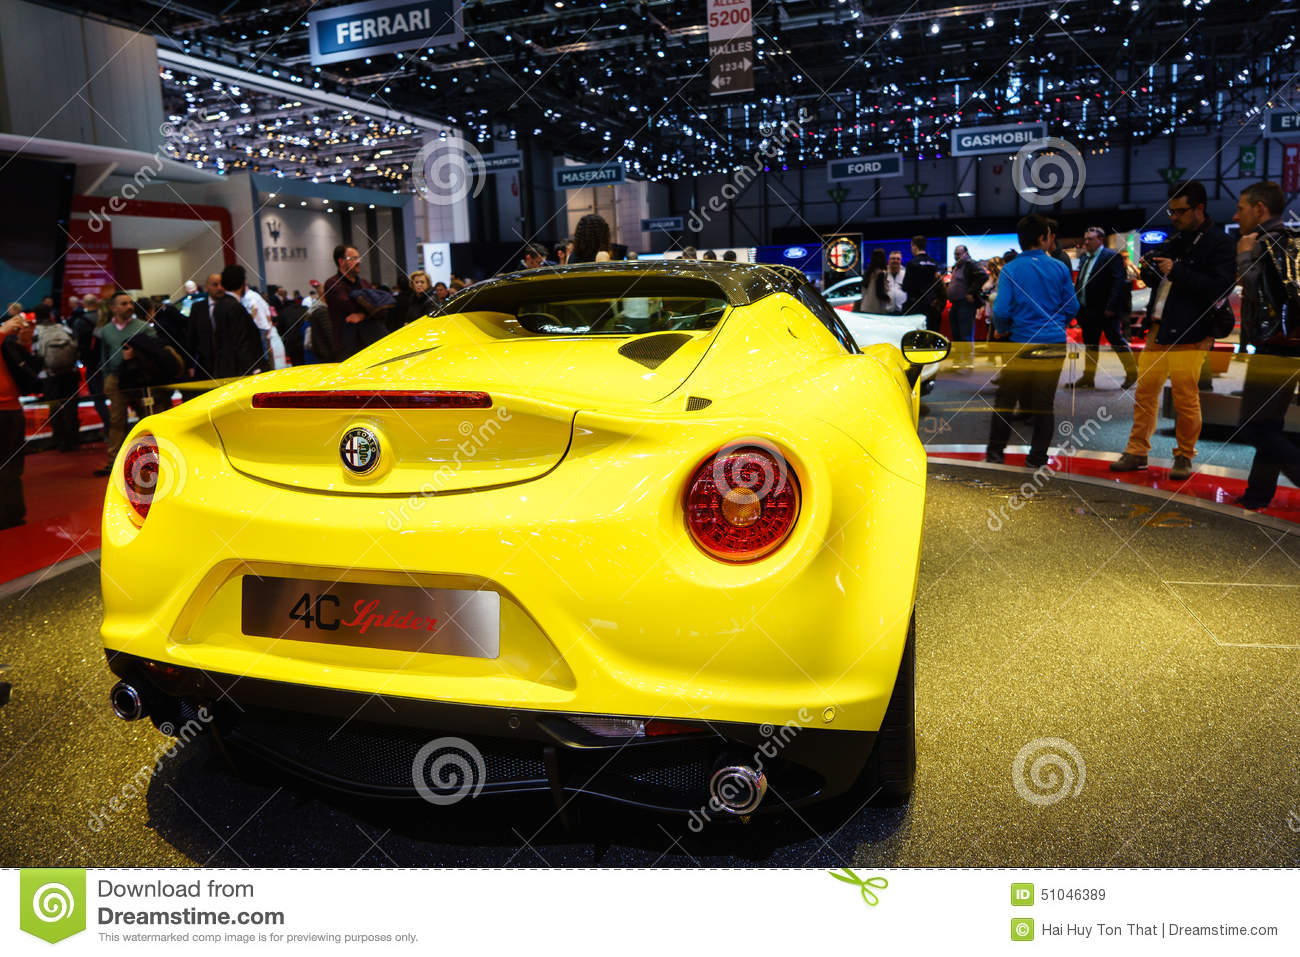 araign e d 39 alfa romeo 4c salon de l 39 automobile geneve 2015 image stock ditorial image 51046389. Black Bedroom Furniture Sets. Home Design Ideas